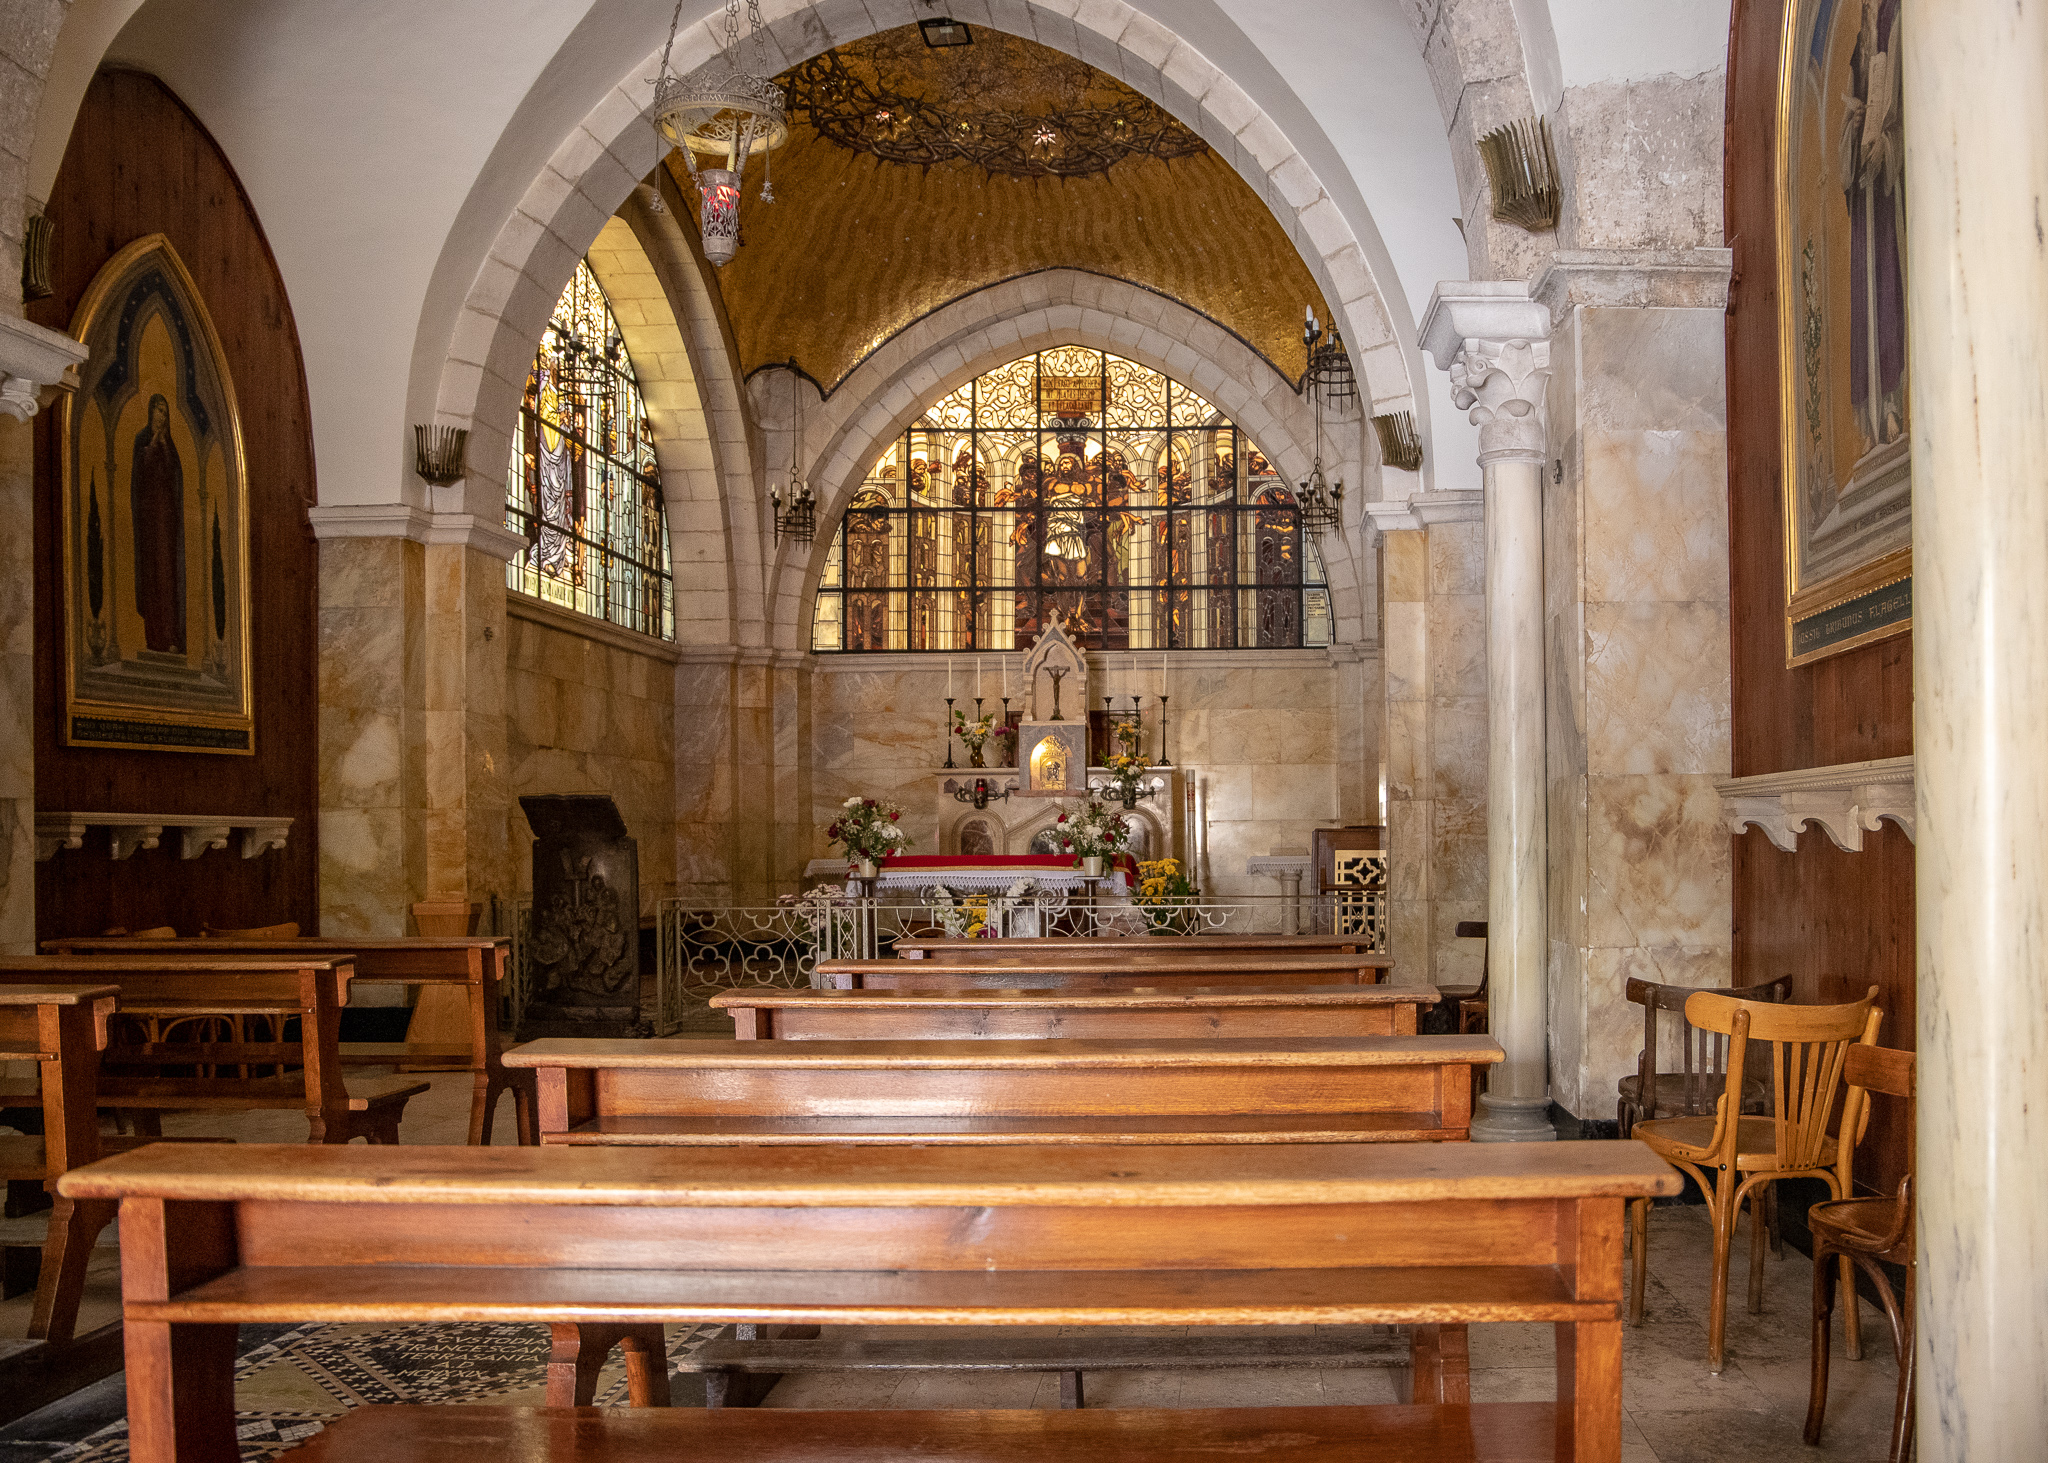 Inside the Church of the Flagellation